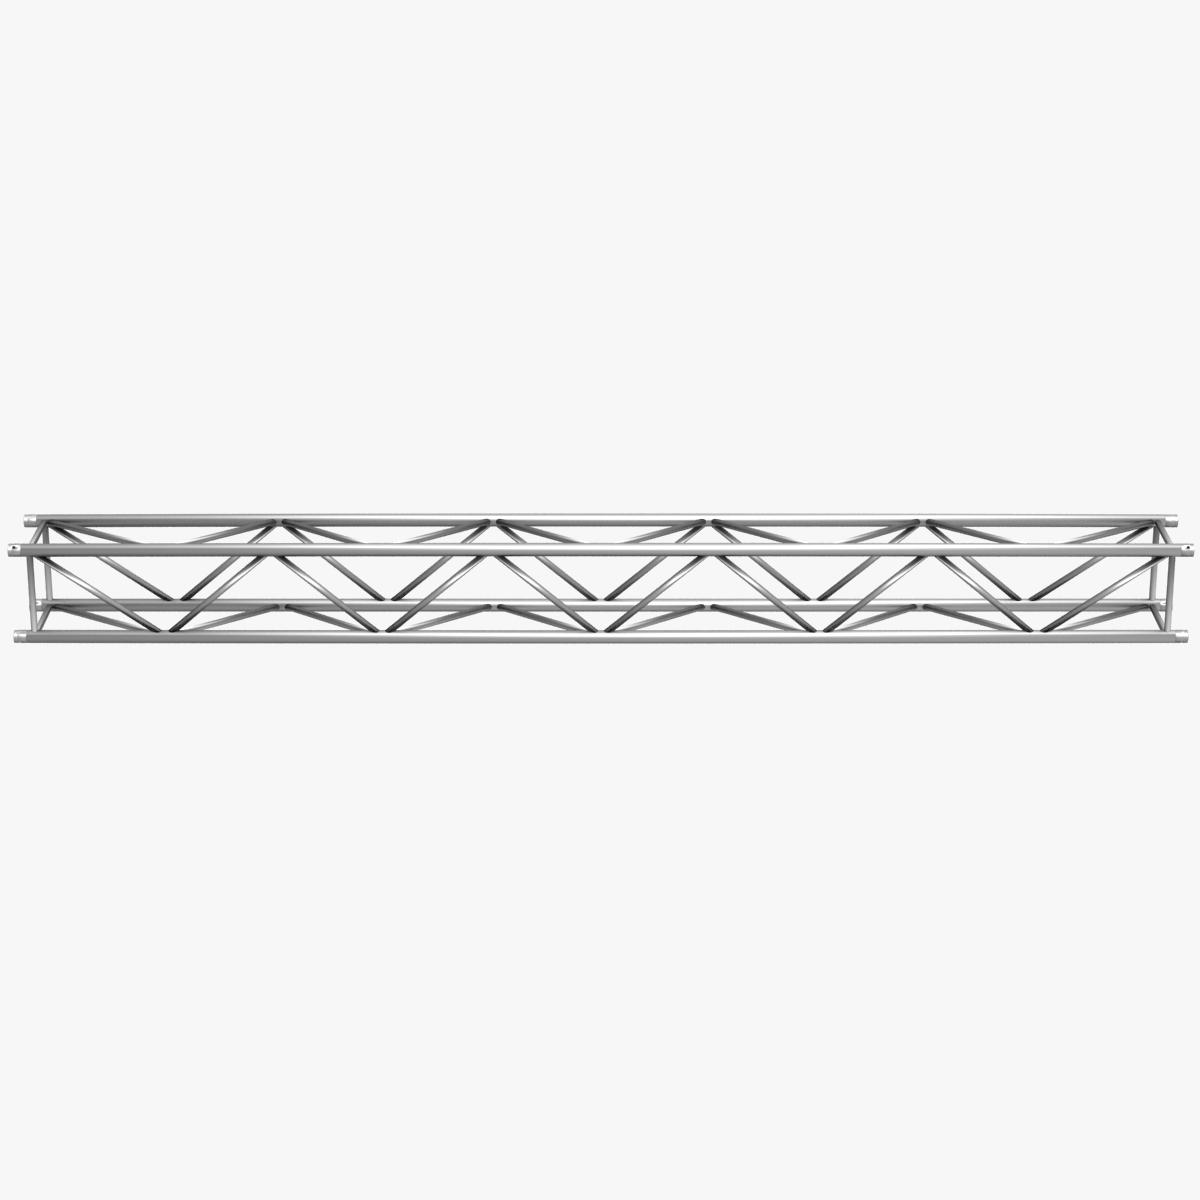 big square truss (collection 10 modular pieces) 3d model 3ds dxf fbx c4d dae  268559